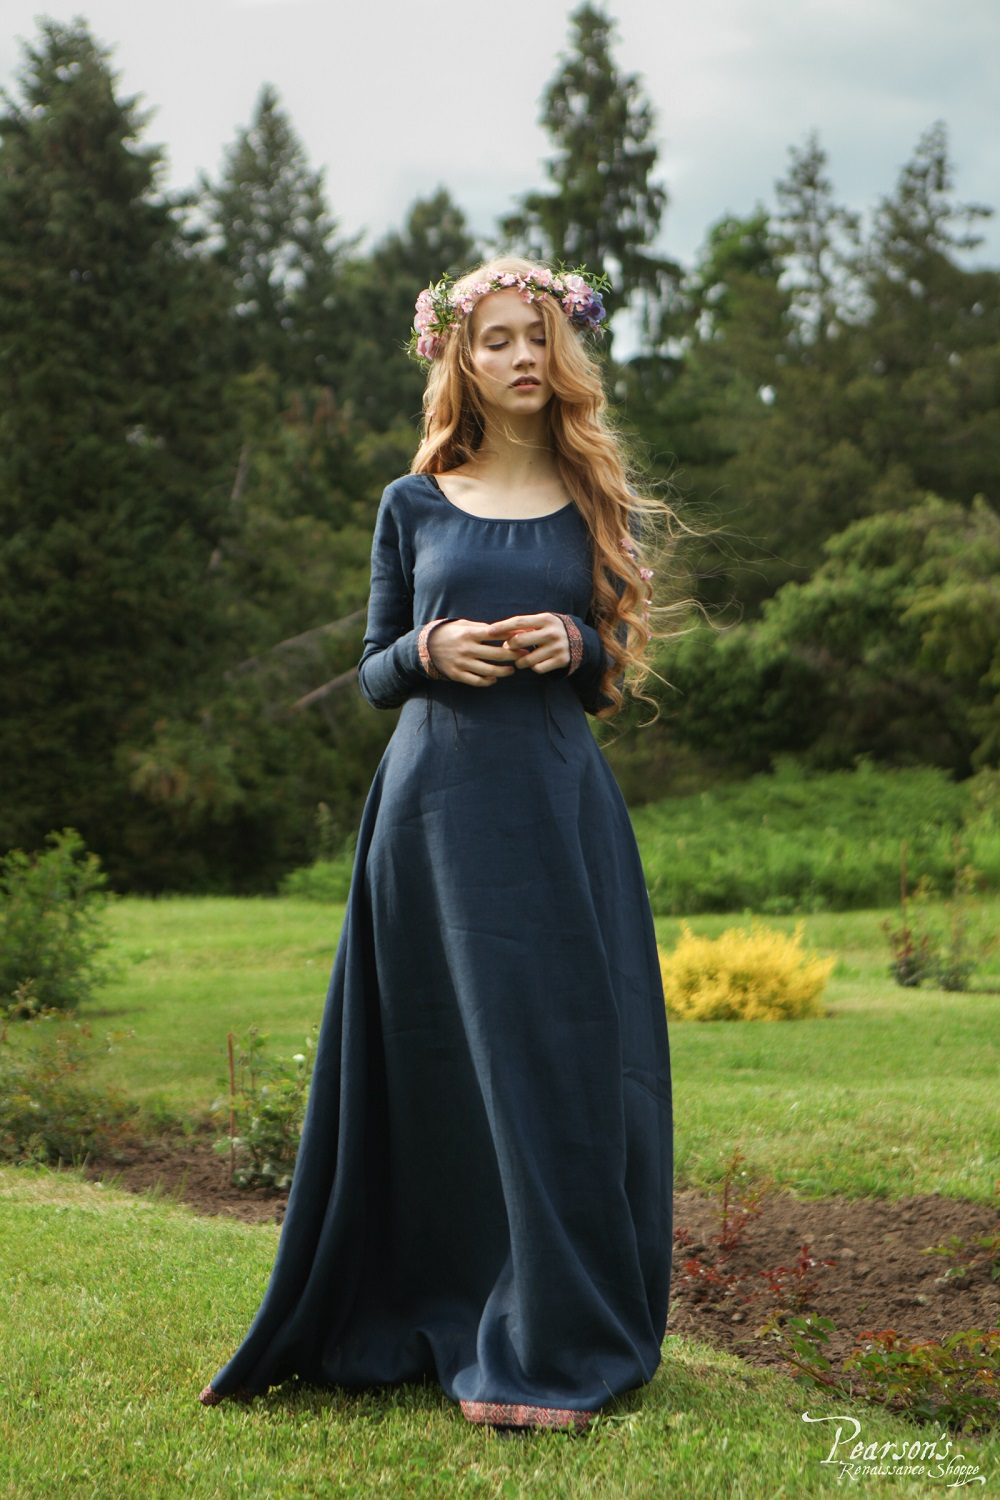 Bridesmaid Dress Secret Garden  medieval renaissance themed wedding